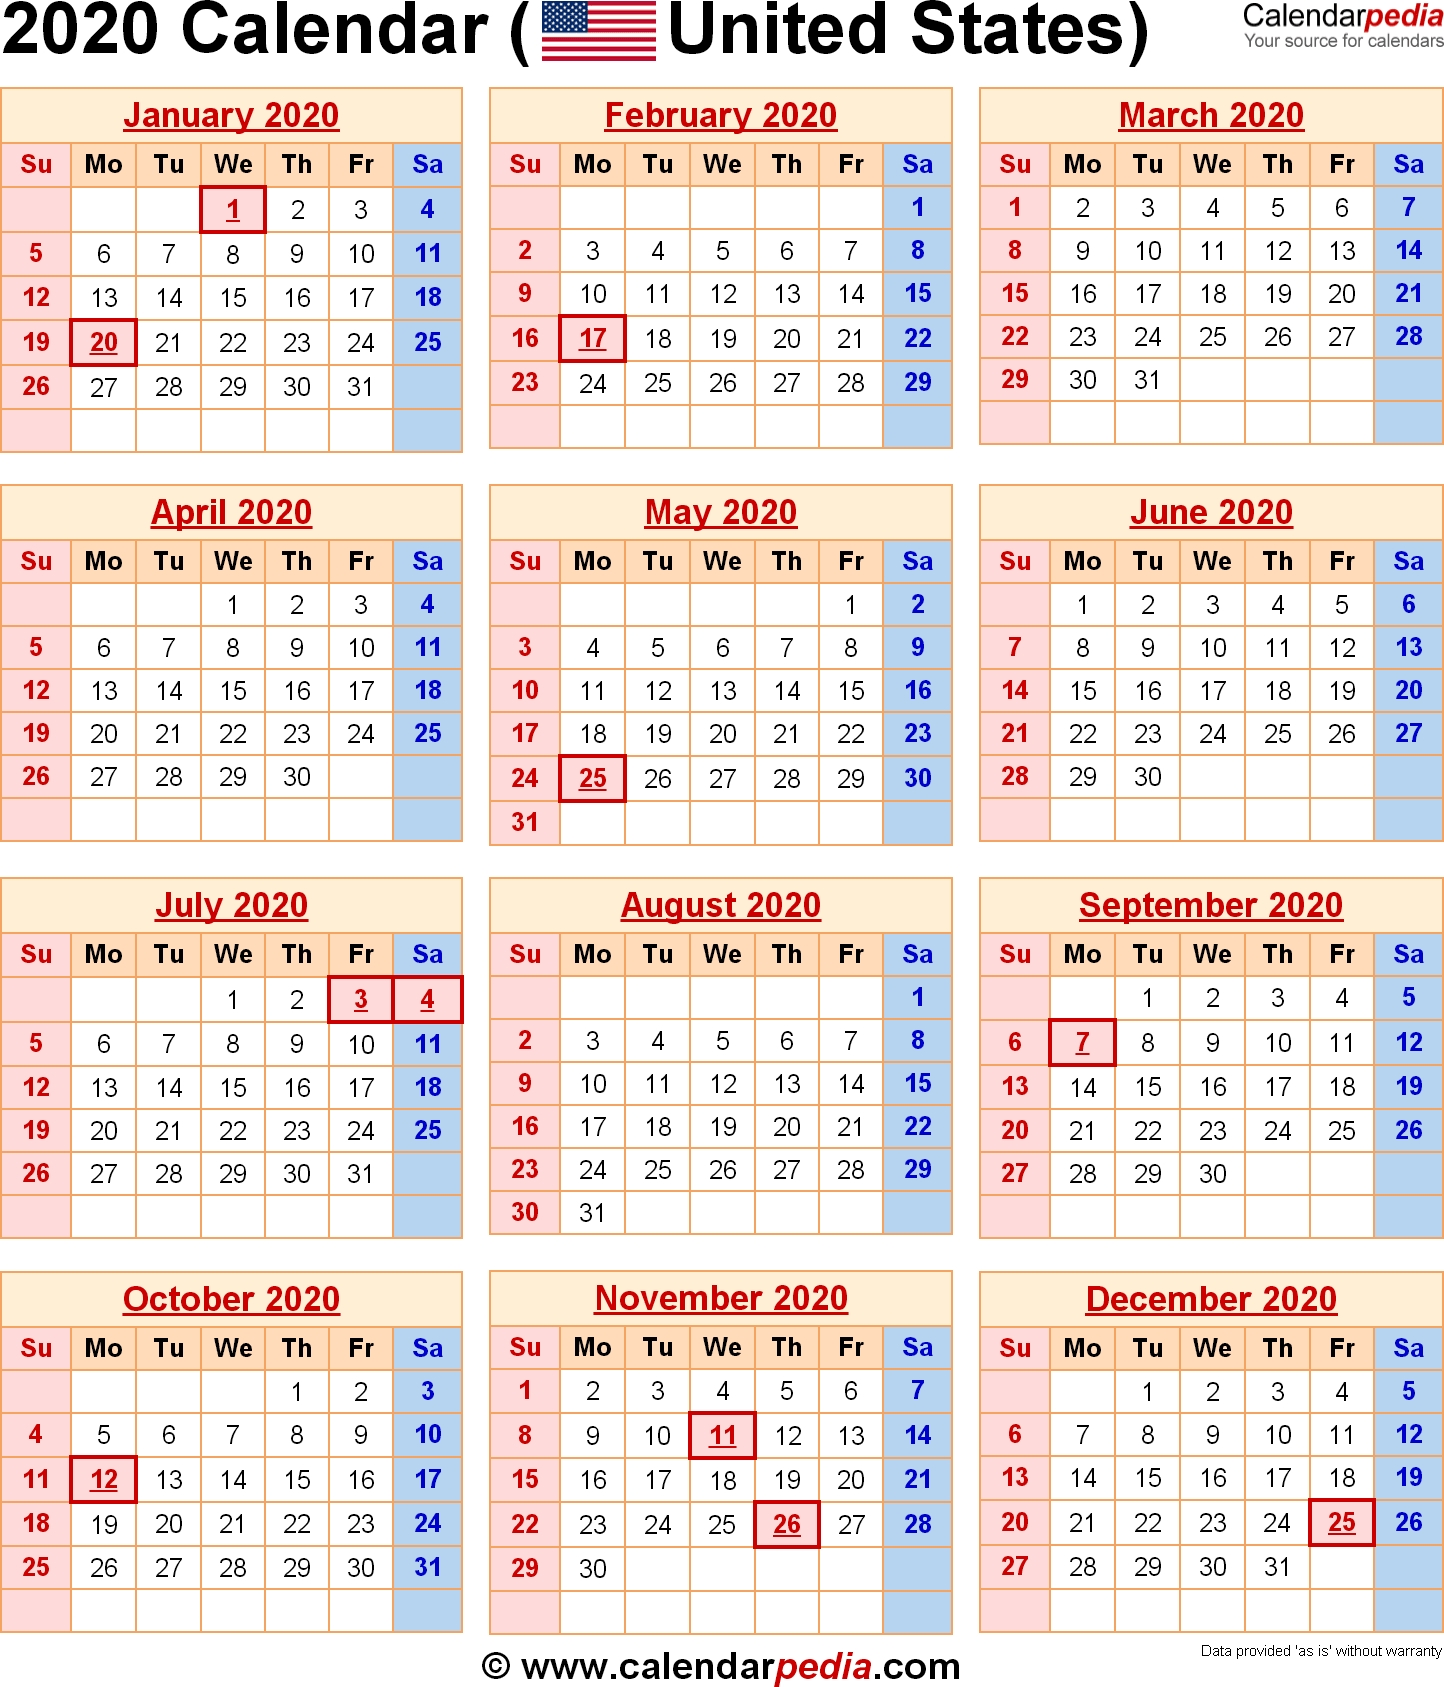 Downloadable Federal Calendar 2020